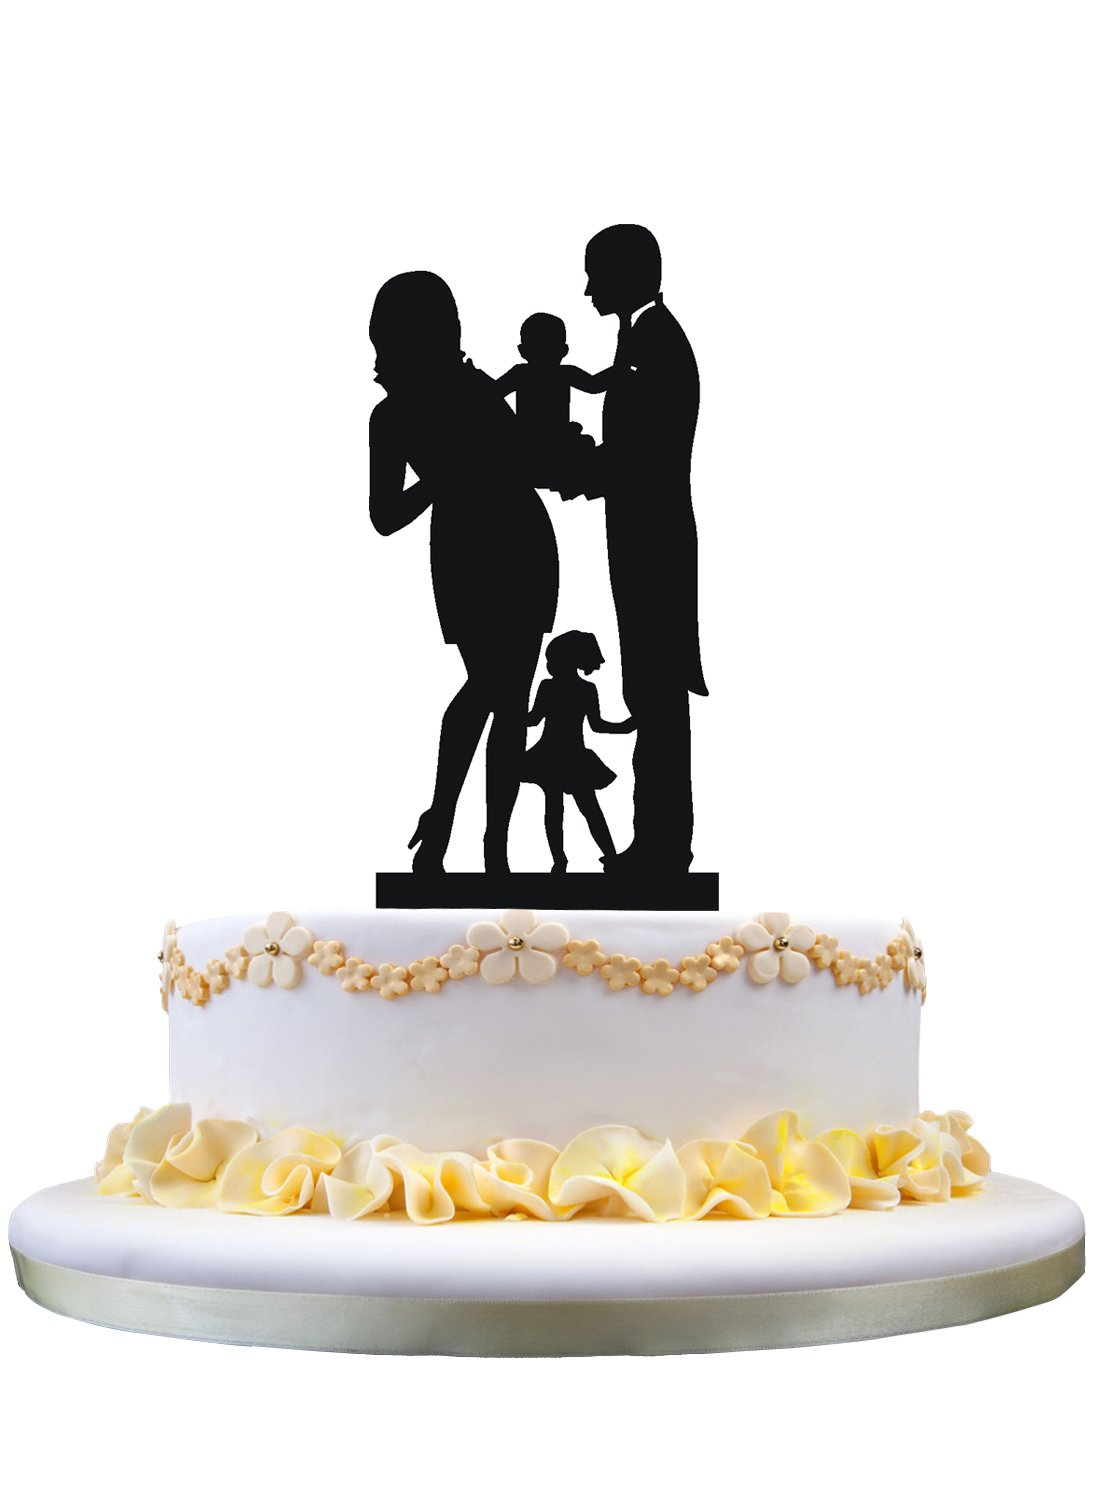 Bride and Groom Silhouette Wedding Cake Toppers , Family Wedding Cake Topper with a baby and a girl